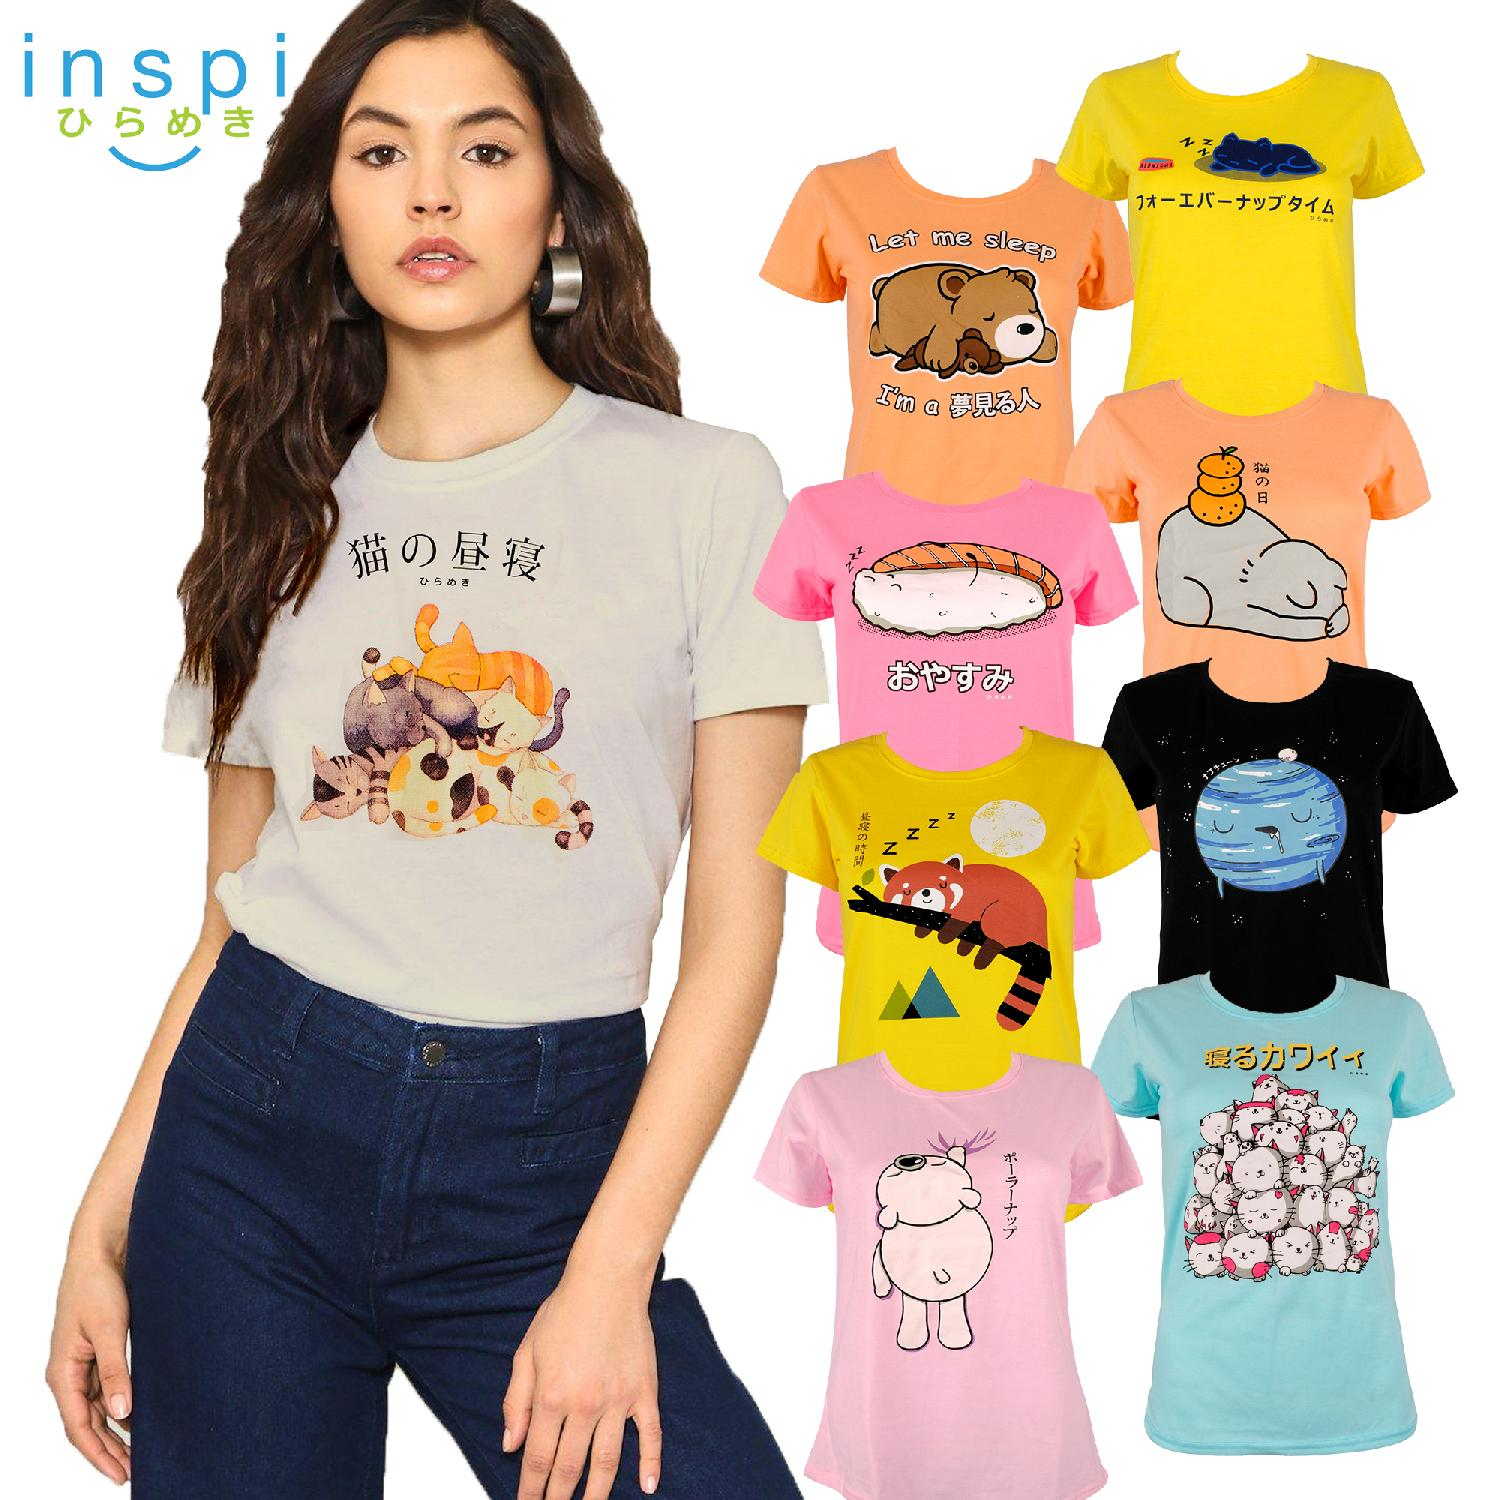 0f69a73f INSPI Tees Ladies Nap Collection tshirt printed graphic tee Ladies t shirt  shirts women tshirts for